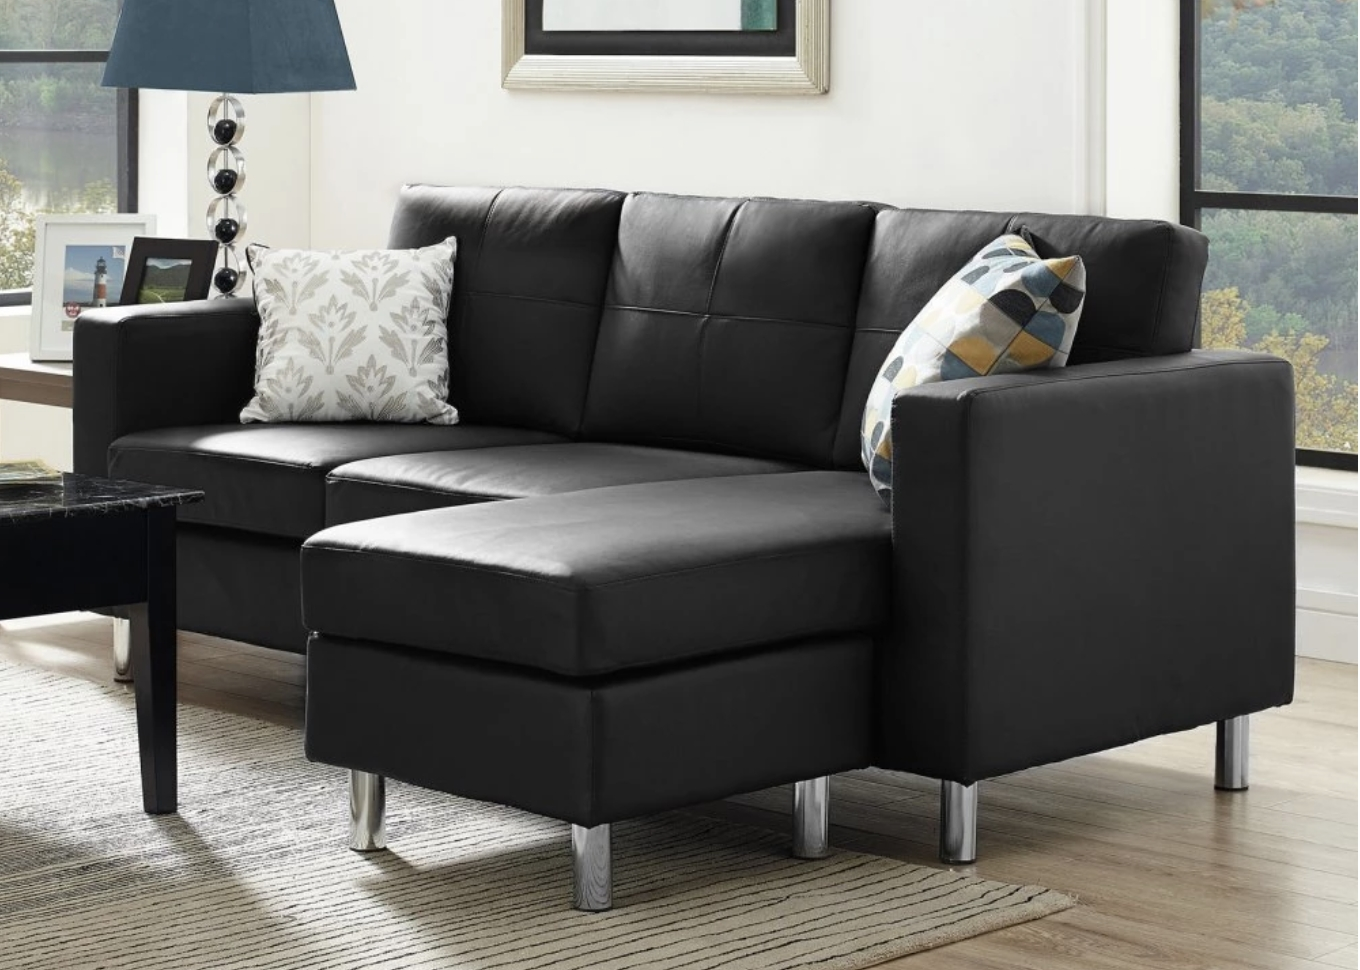 Sectional Sofas That Can Be Rearranged Intended For Widely Used 75 Modern Sectional Sofas For Small Spaces (2018) (View 10 of 15)